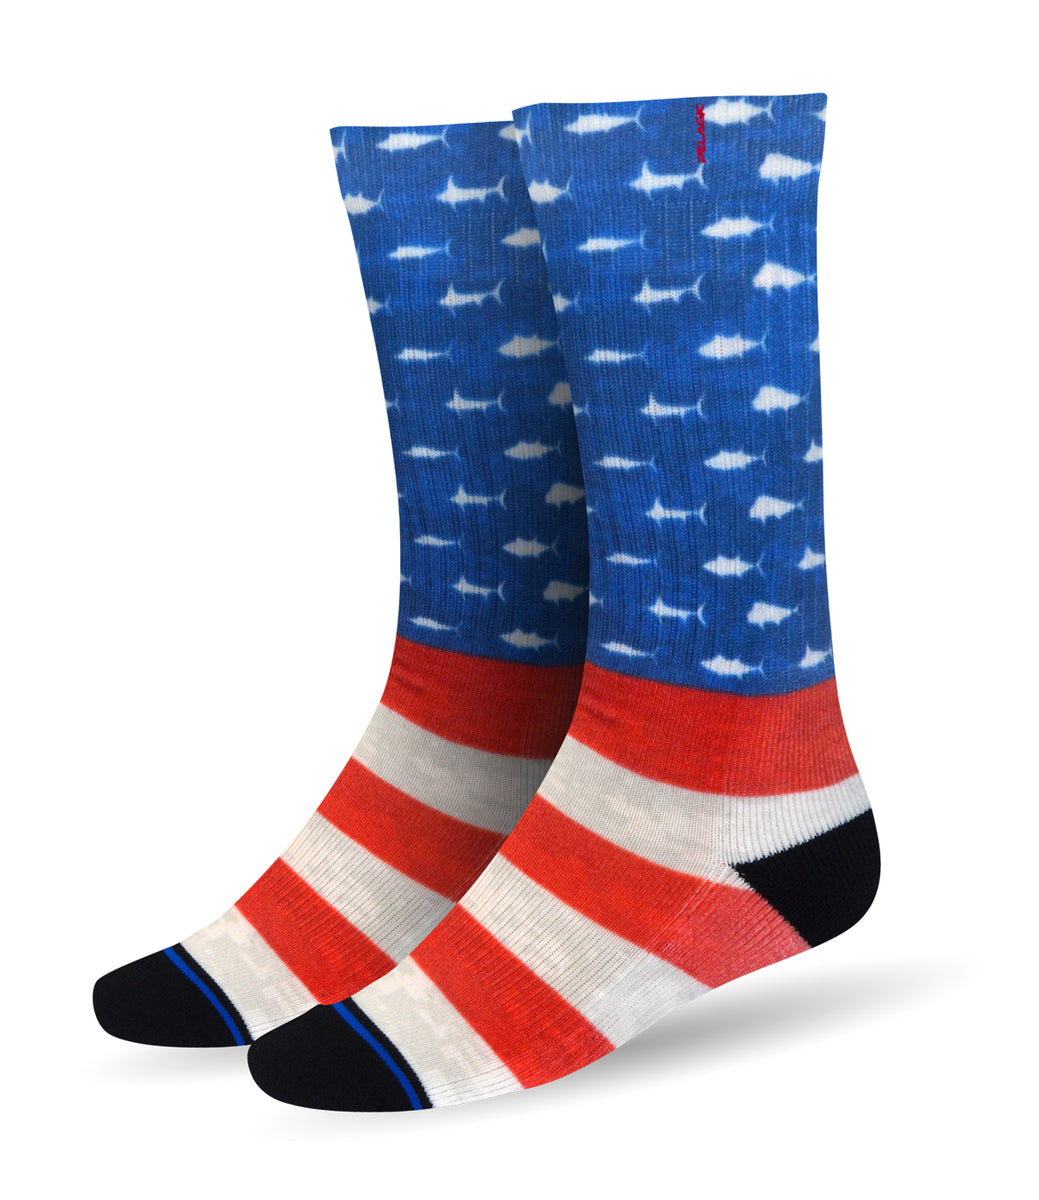 Proform Socks 2-Pack Americamo Big Image - 4